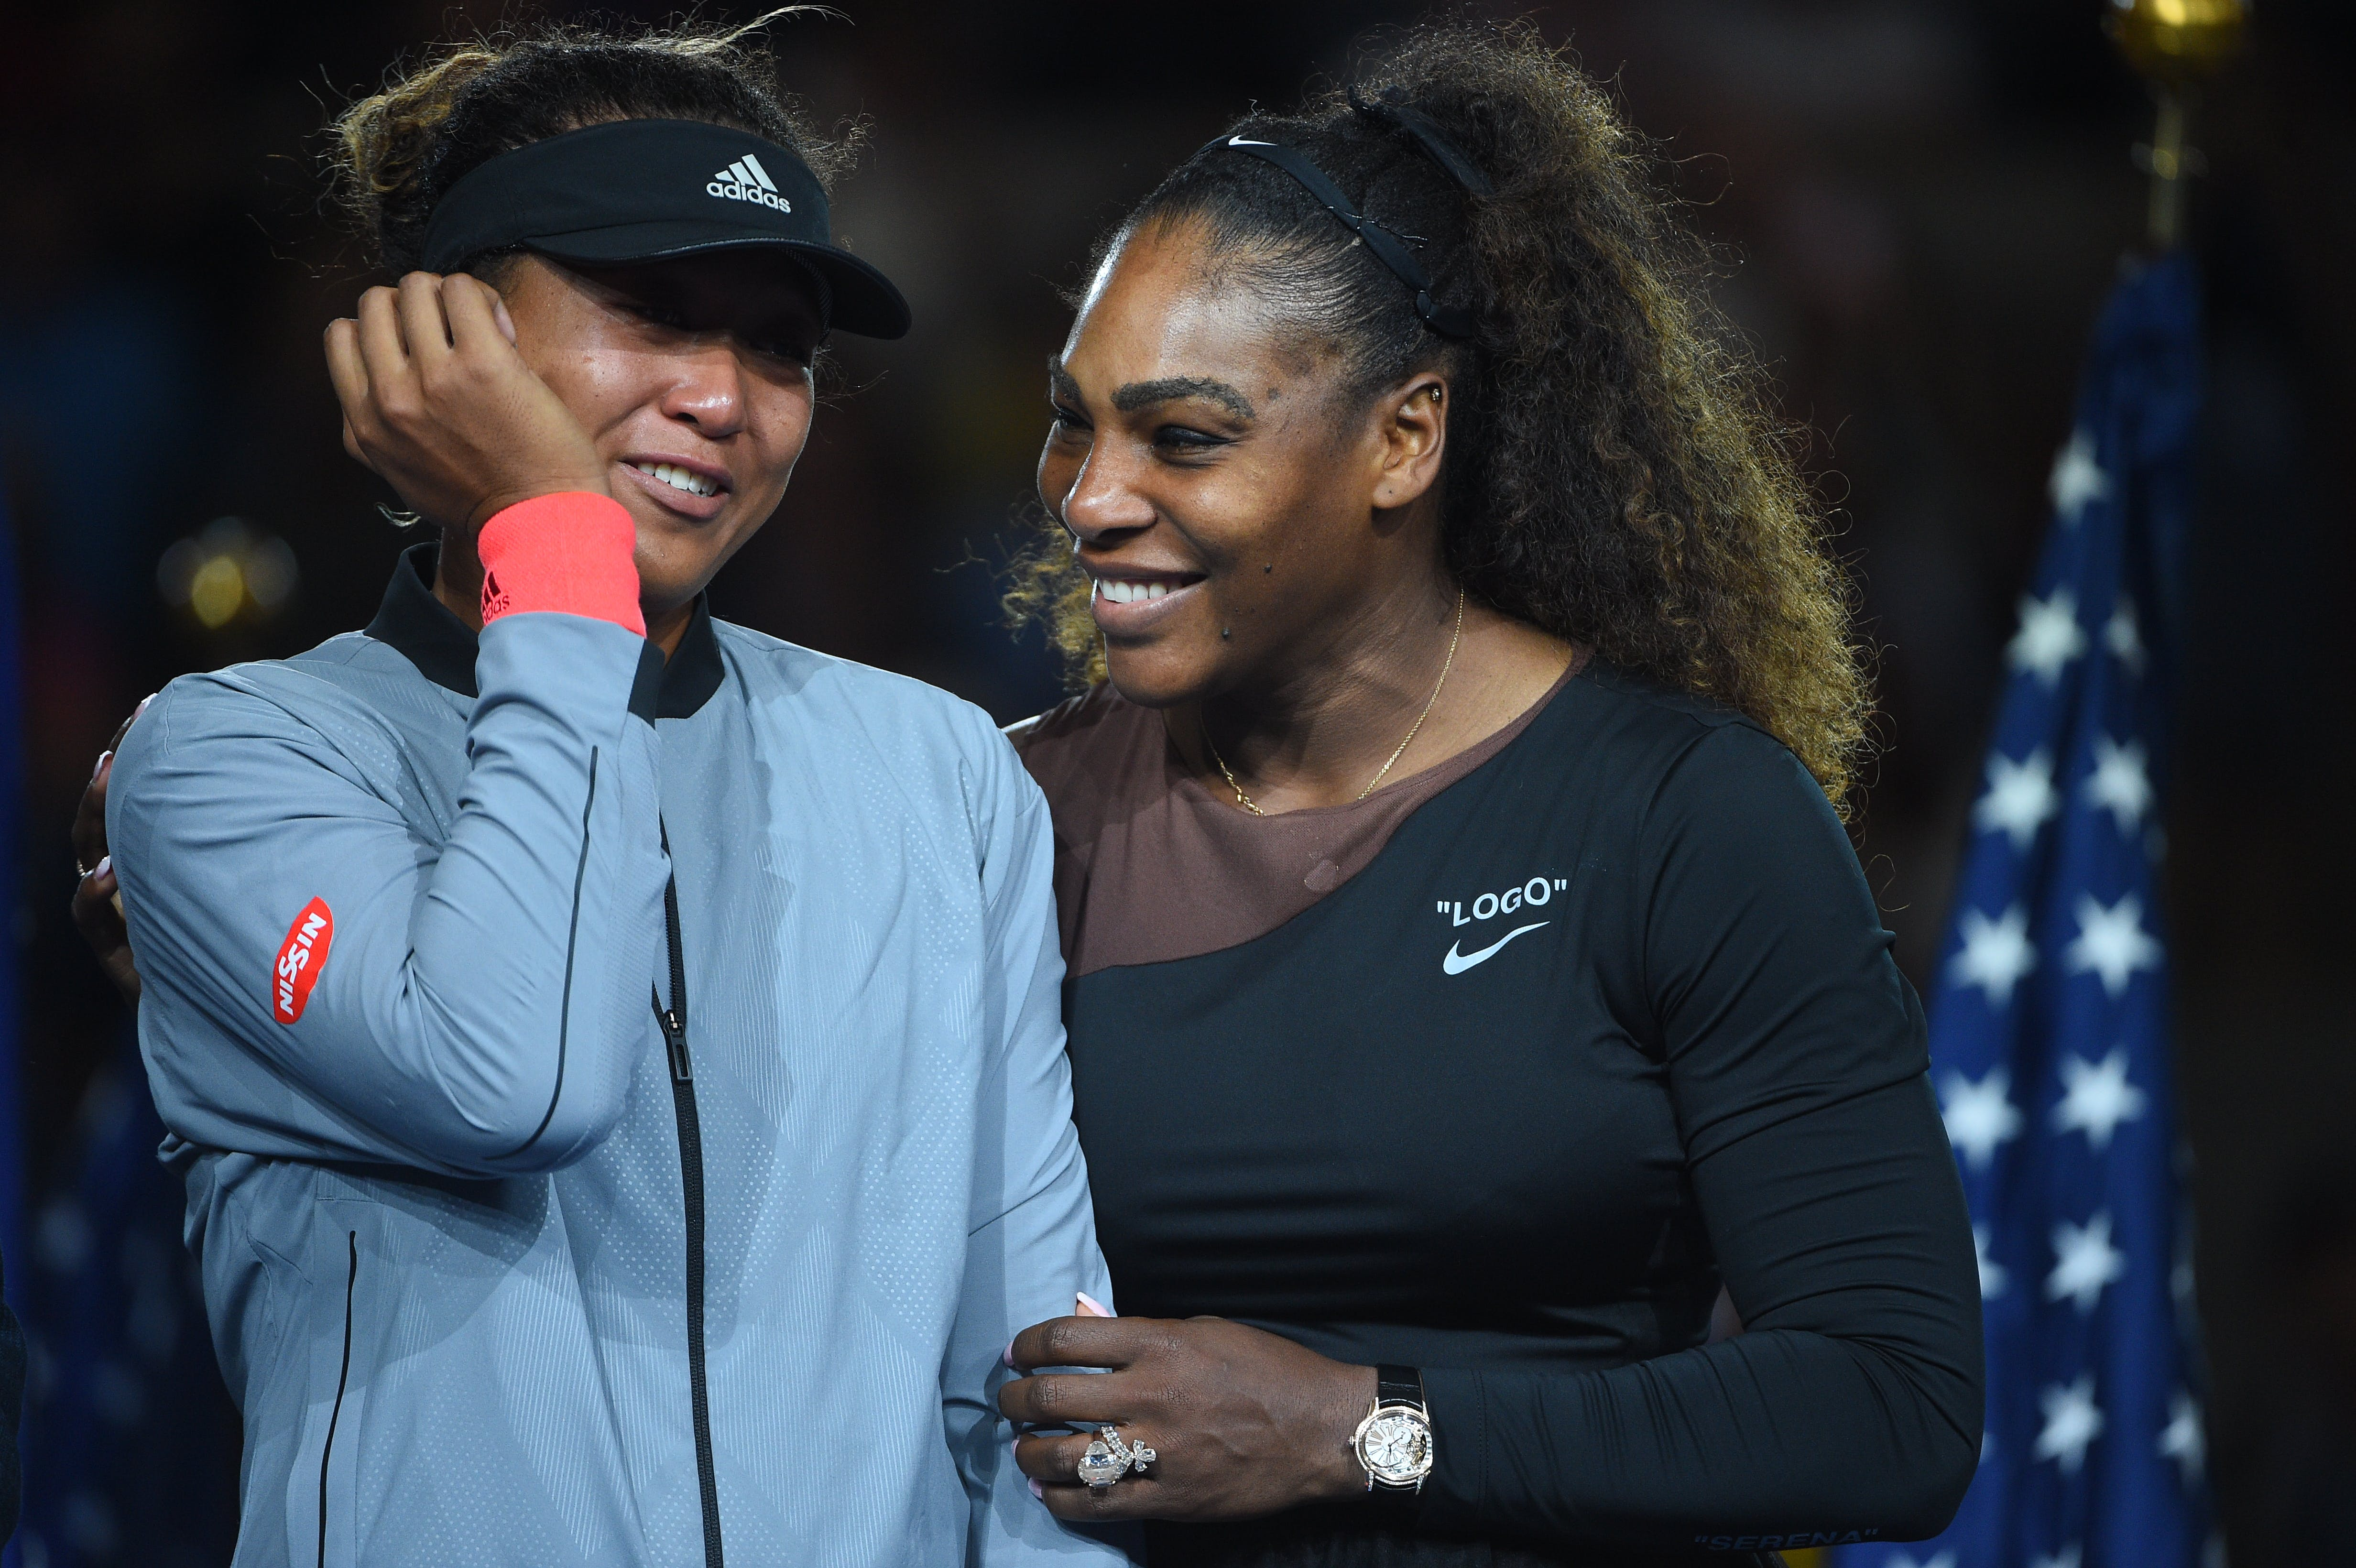 Naomi Osaka and Serena Williams during the trophy presentation US Open 2018